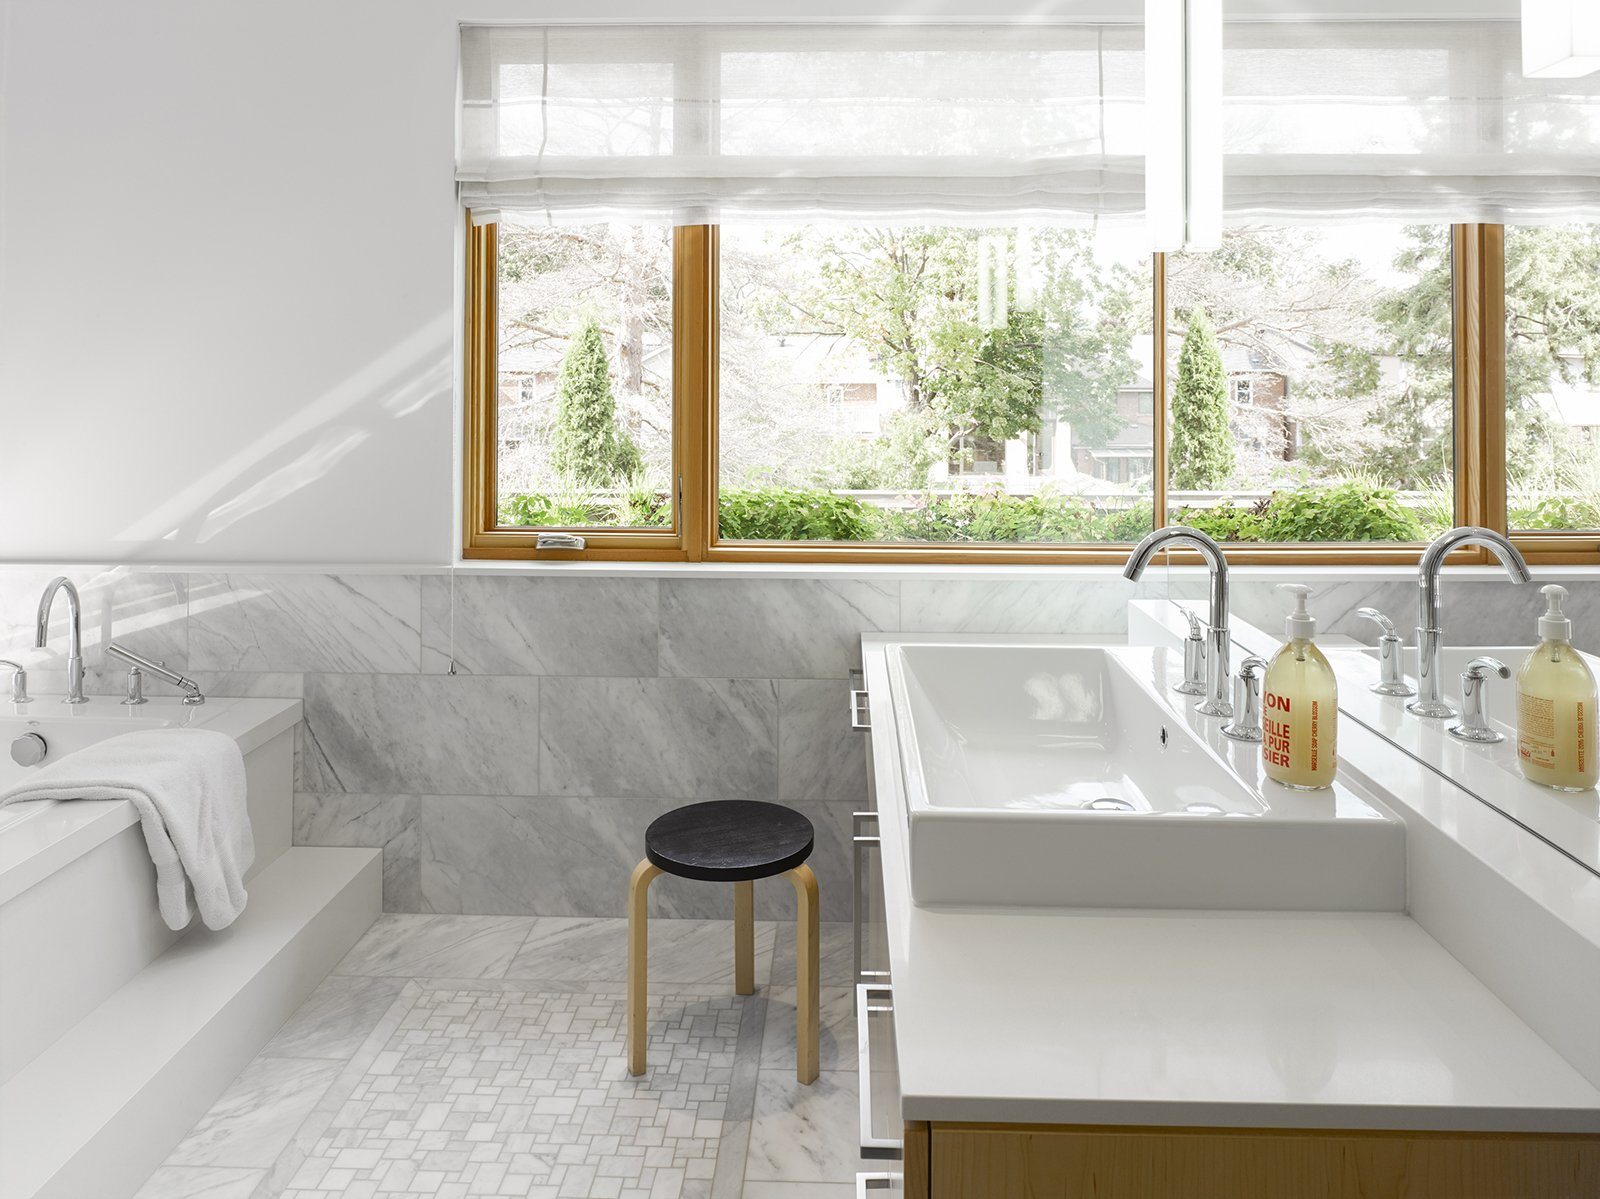 Carrara marble clads the spacious bathroom. Tagged: Bath Room and Vessel Sink.  Photo 7 of 11 in Smart Tech Makes this Modern Home Ultra Energy Efficient